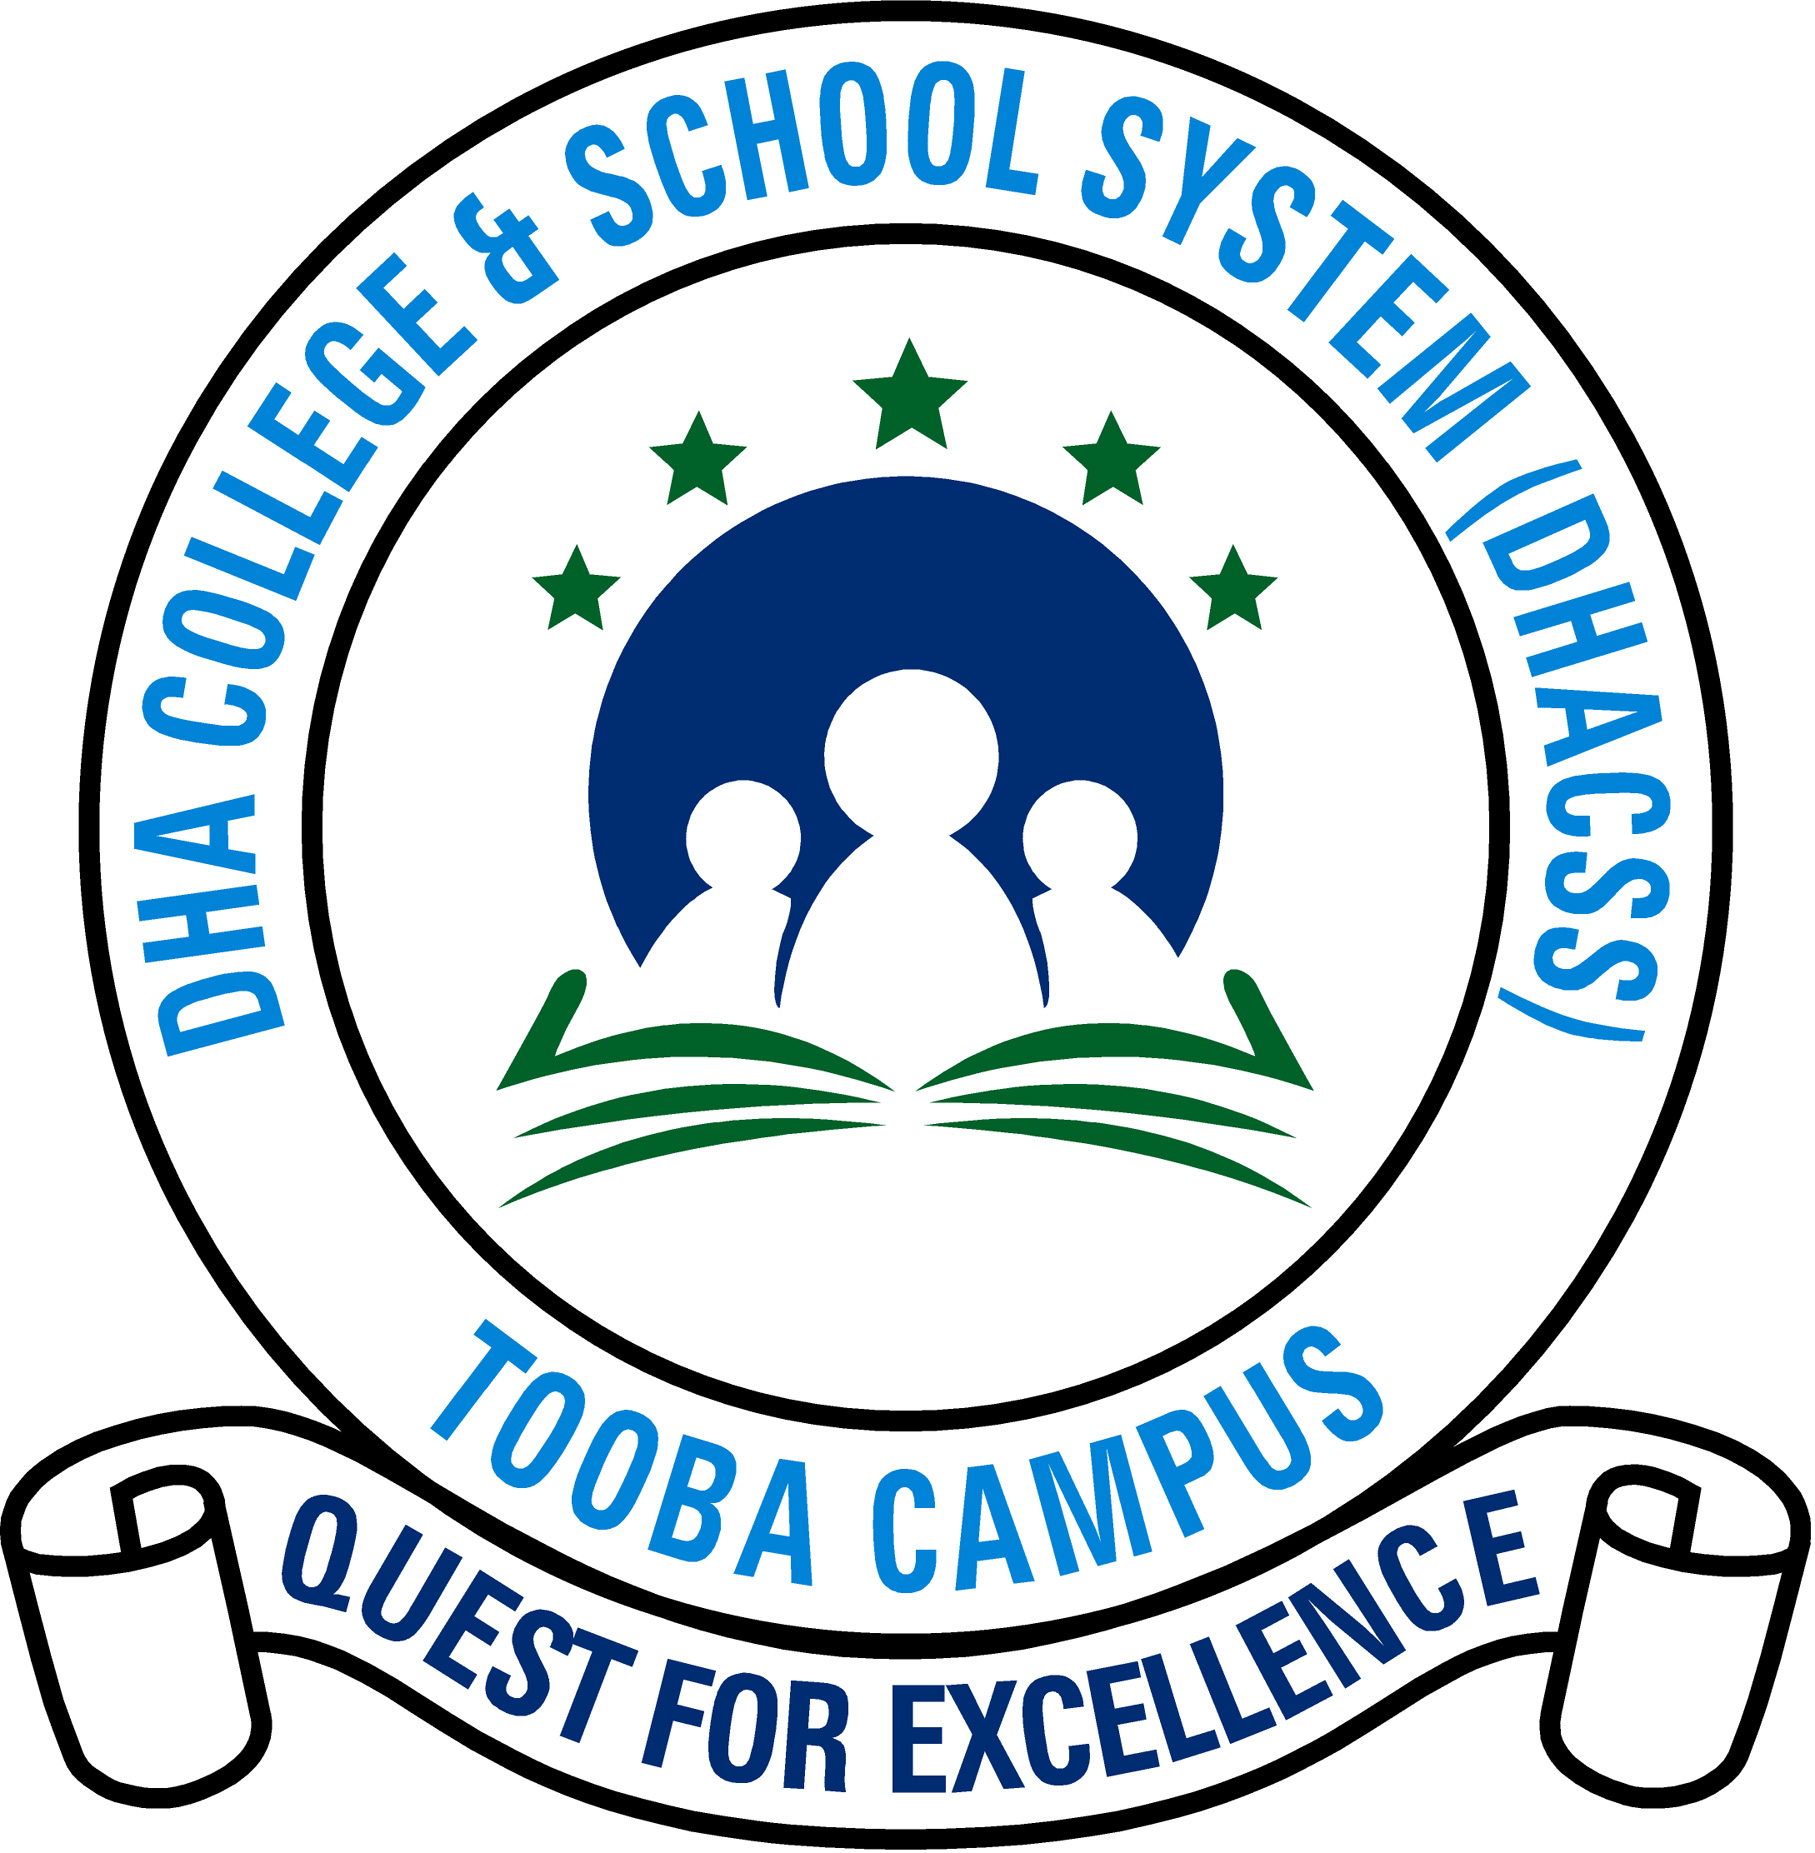 DHACSS Tooba Campus